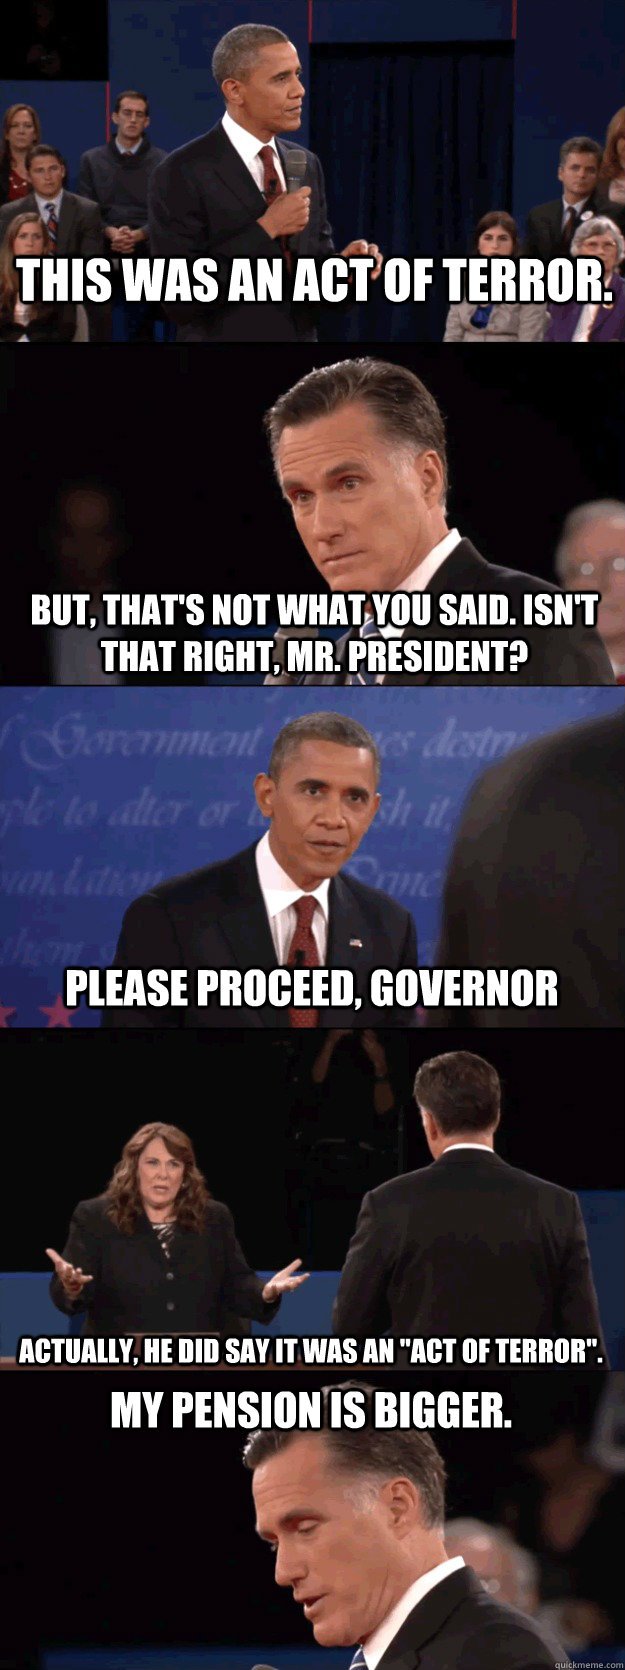 Jon Stewart on How Obama Allowed Romney to Proceed into a Wall